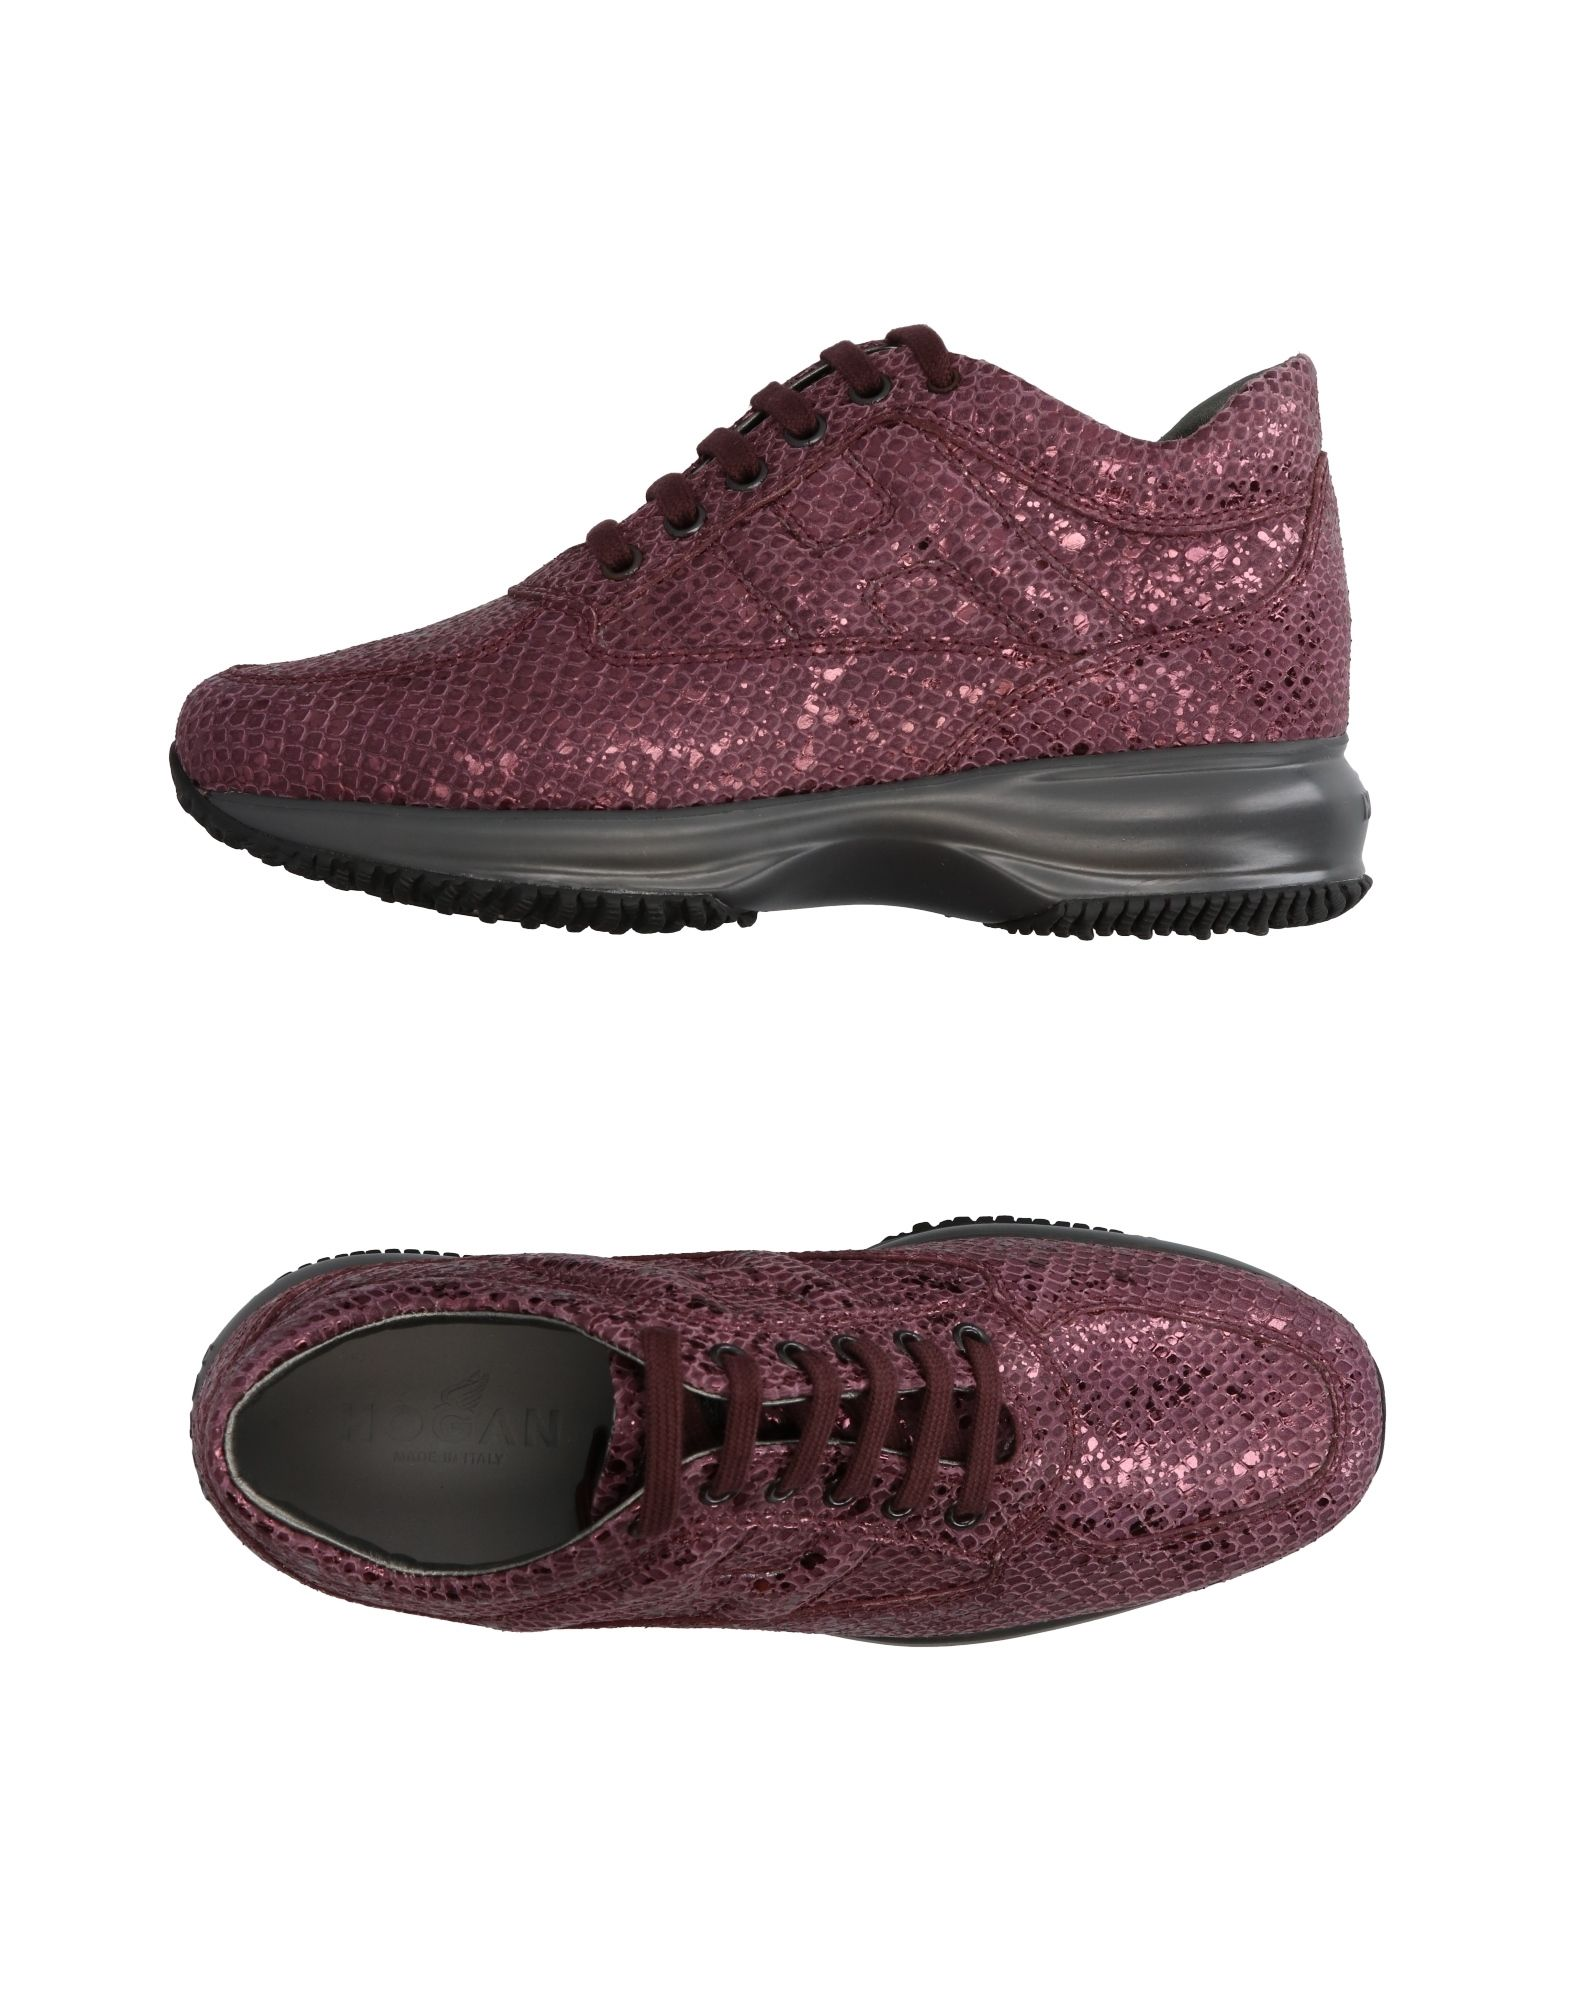 Hogan Sneakers Sneakers Sneakers - Women Hogan Sneakers online on  United Kingdom - 11299120TW 6fe71e